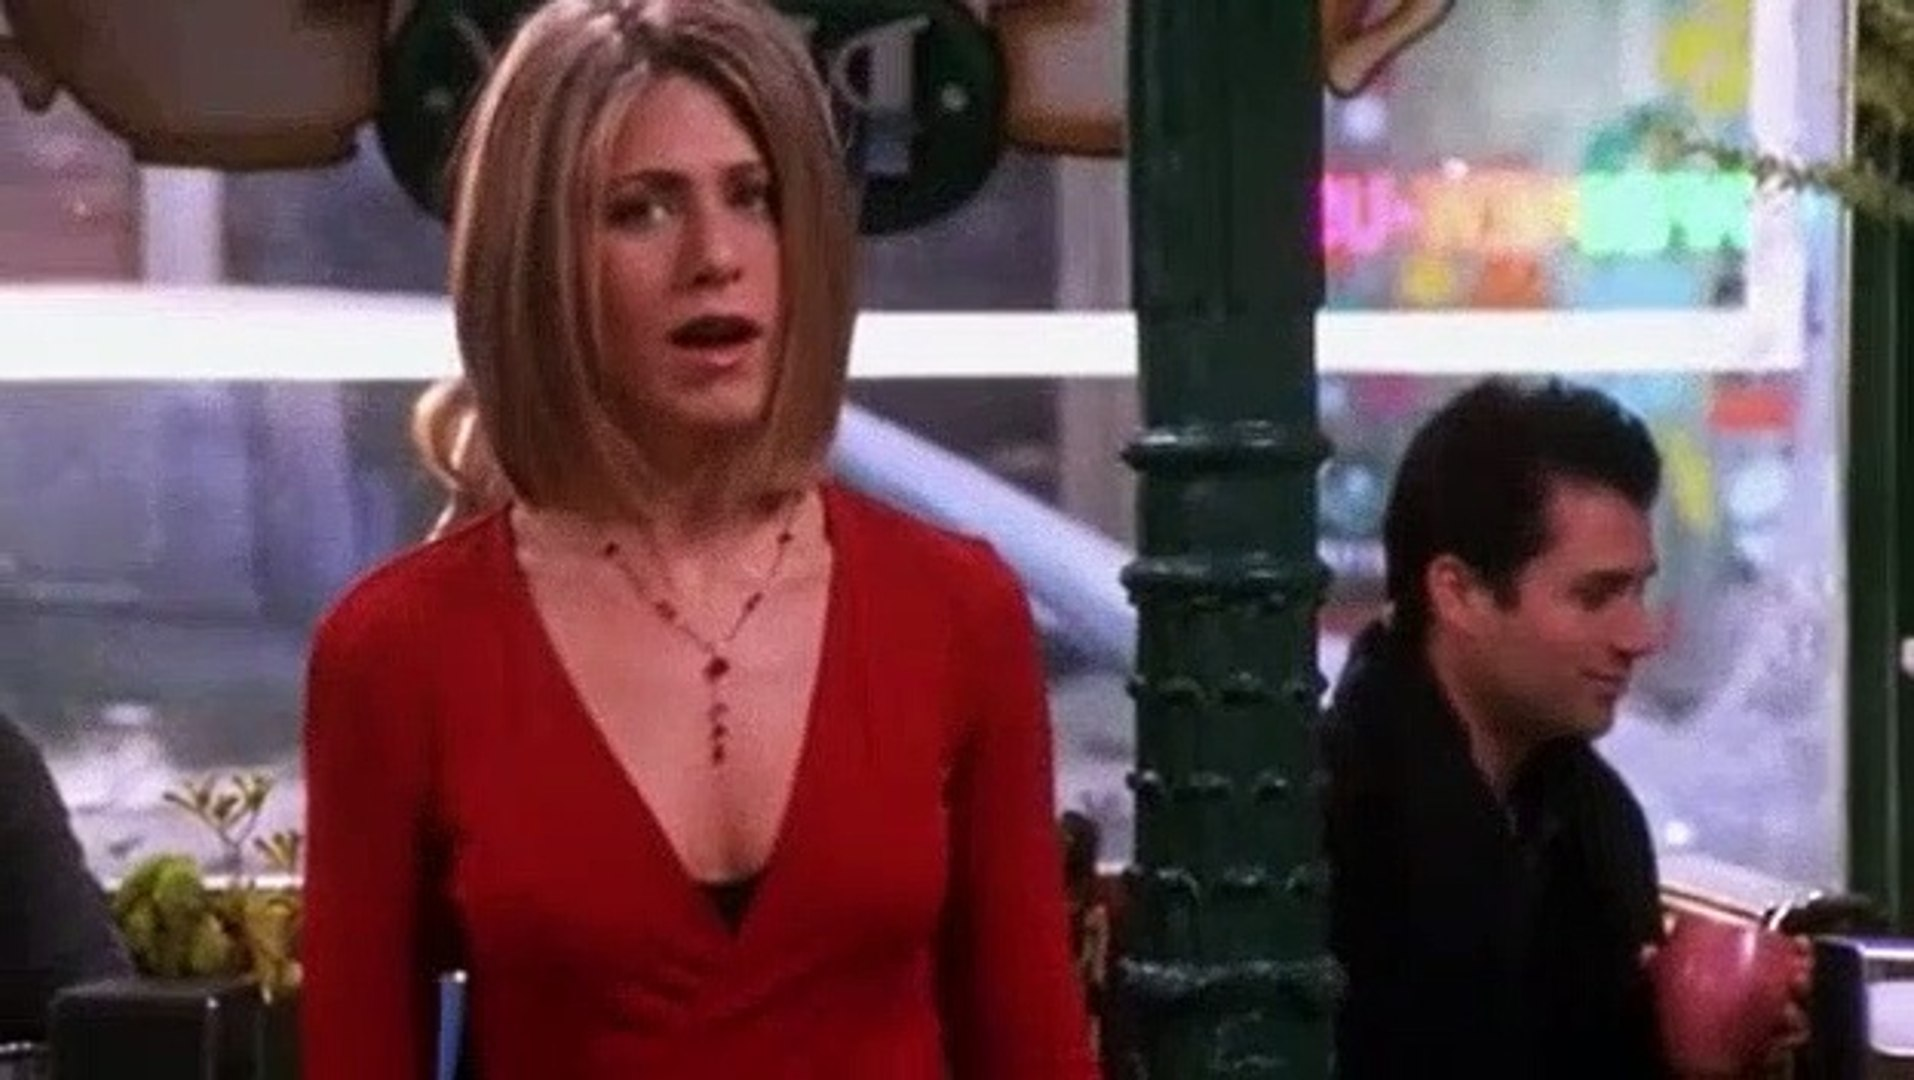 Friends S07E15 The One with Joey's New Brain